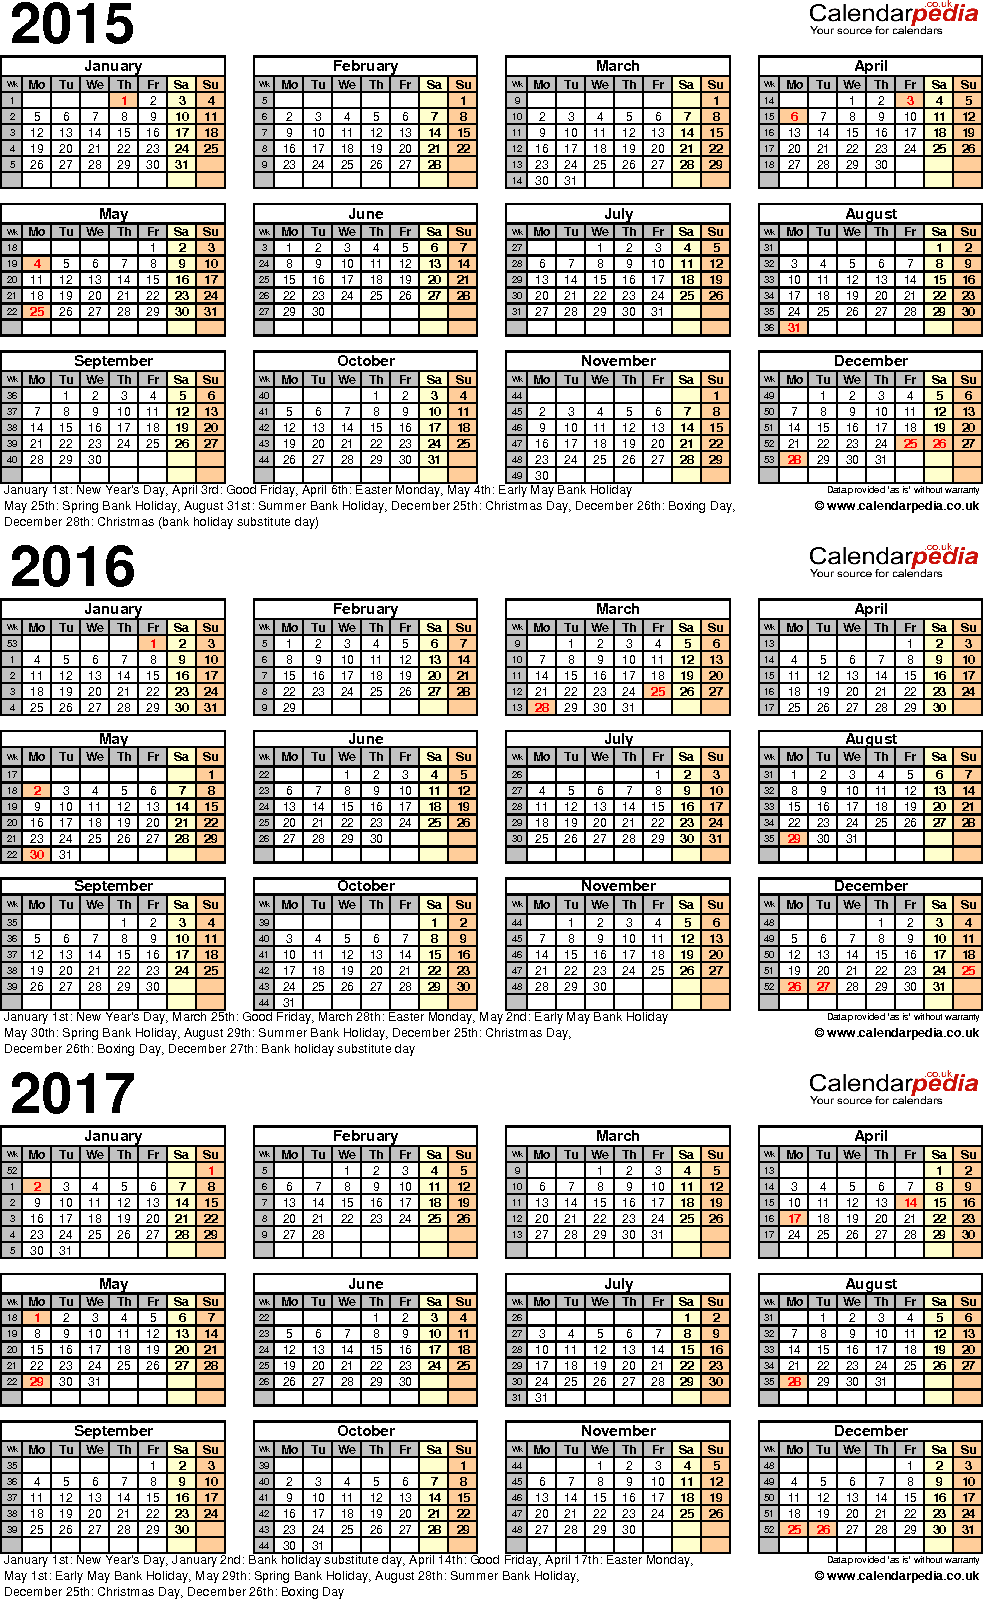 Download Template 4: Word template for three year calendar 2015-2017 (portrait orientation, 1 page, A4)